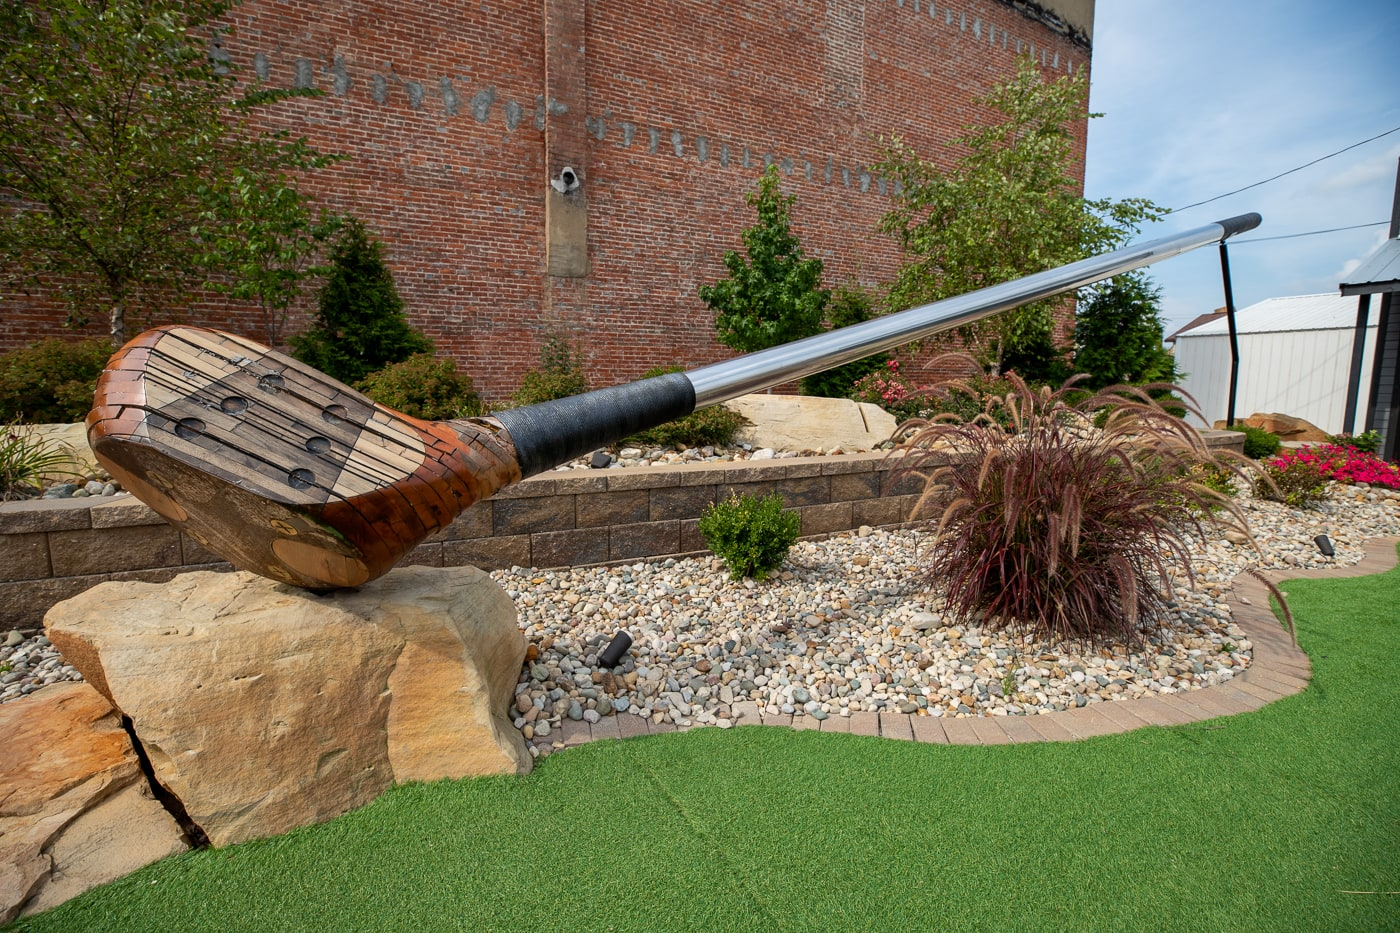 World's Largest Golf Club in Casey, Illinois roadside attraction